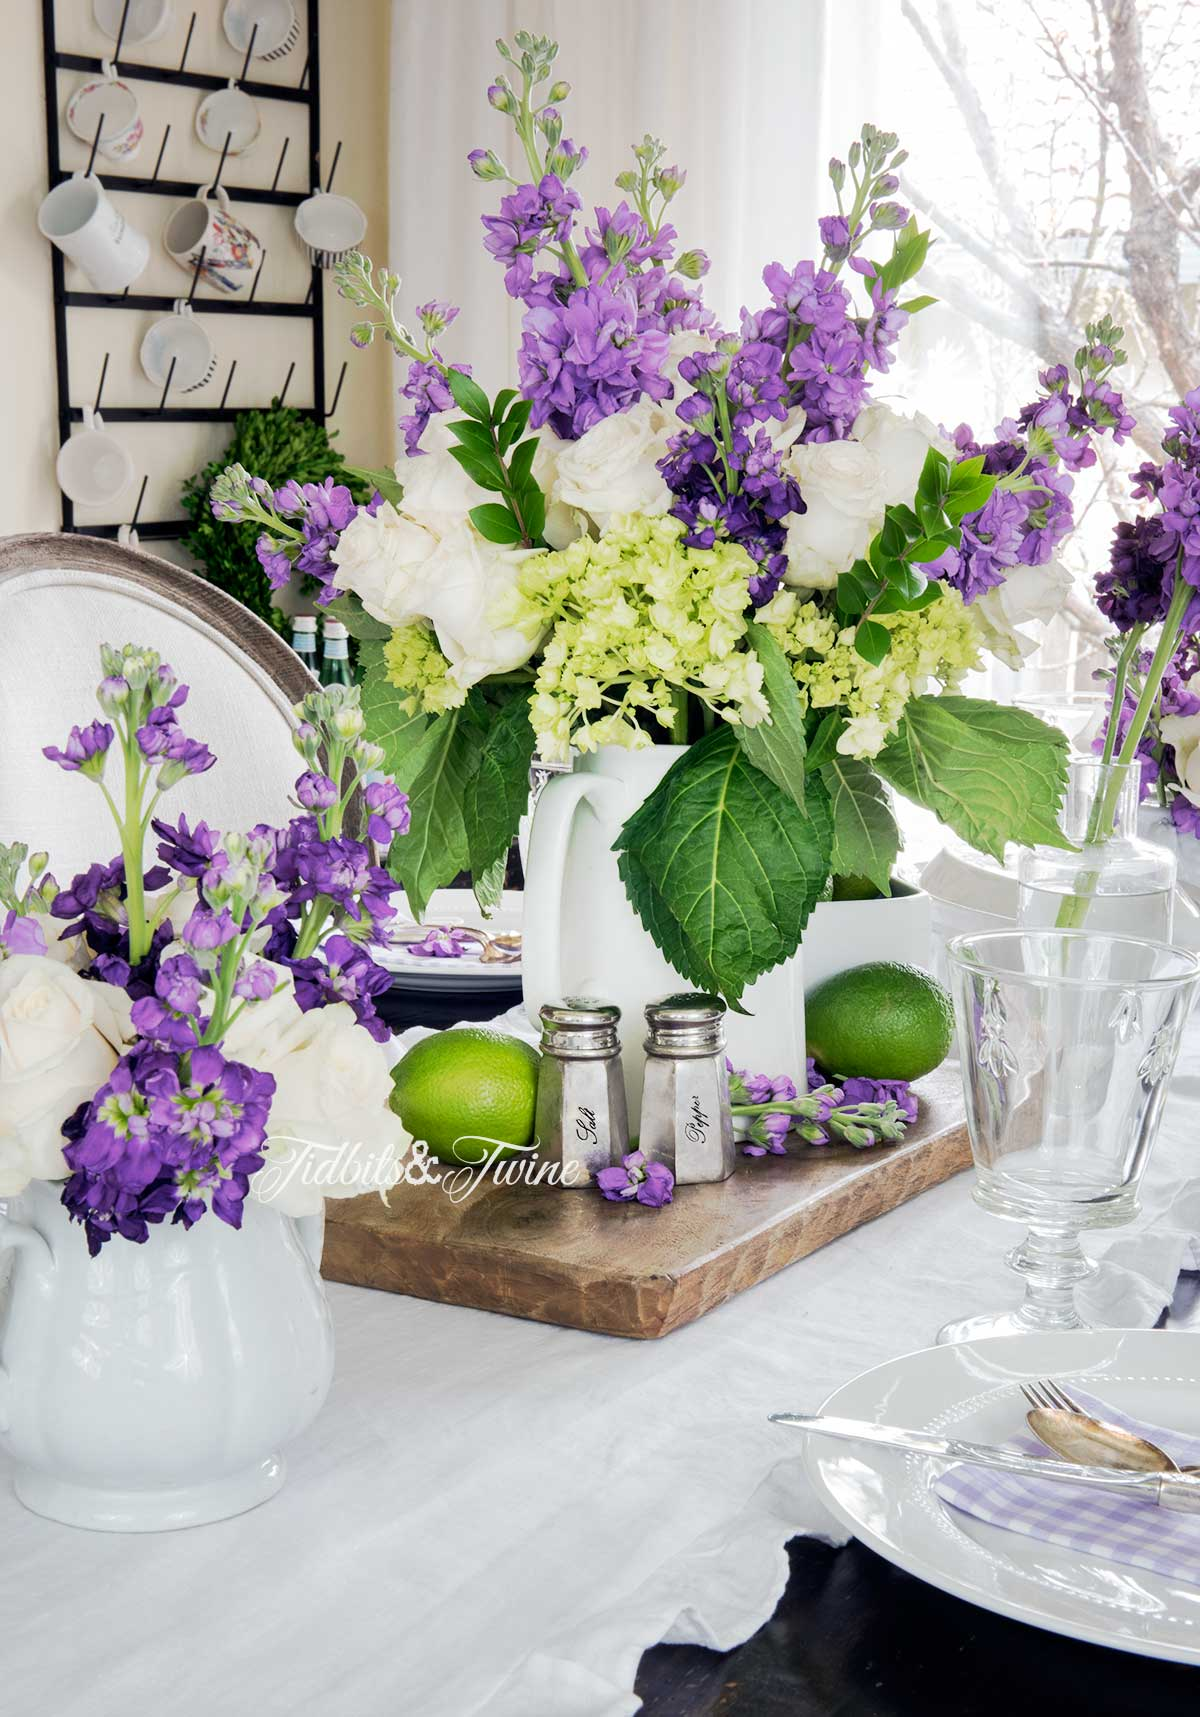 Tidbits&Twine-Spring-Dining-Room-Table-Ideas-2-Site-4